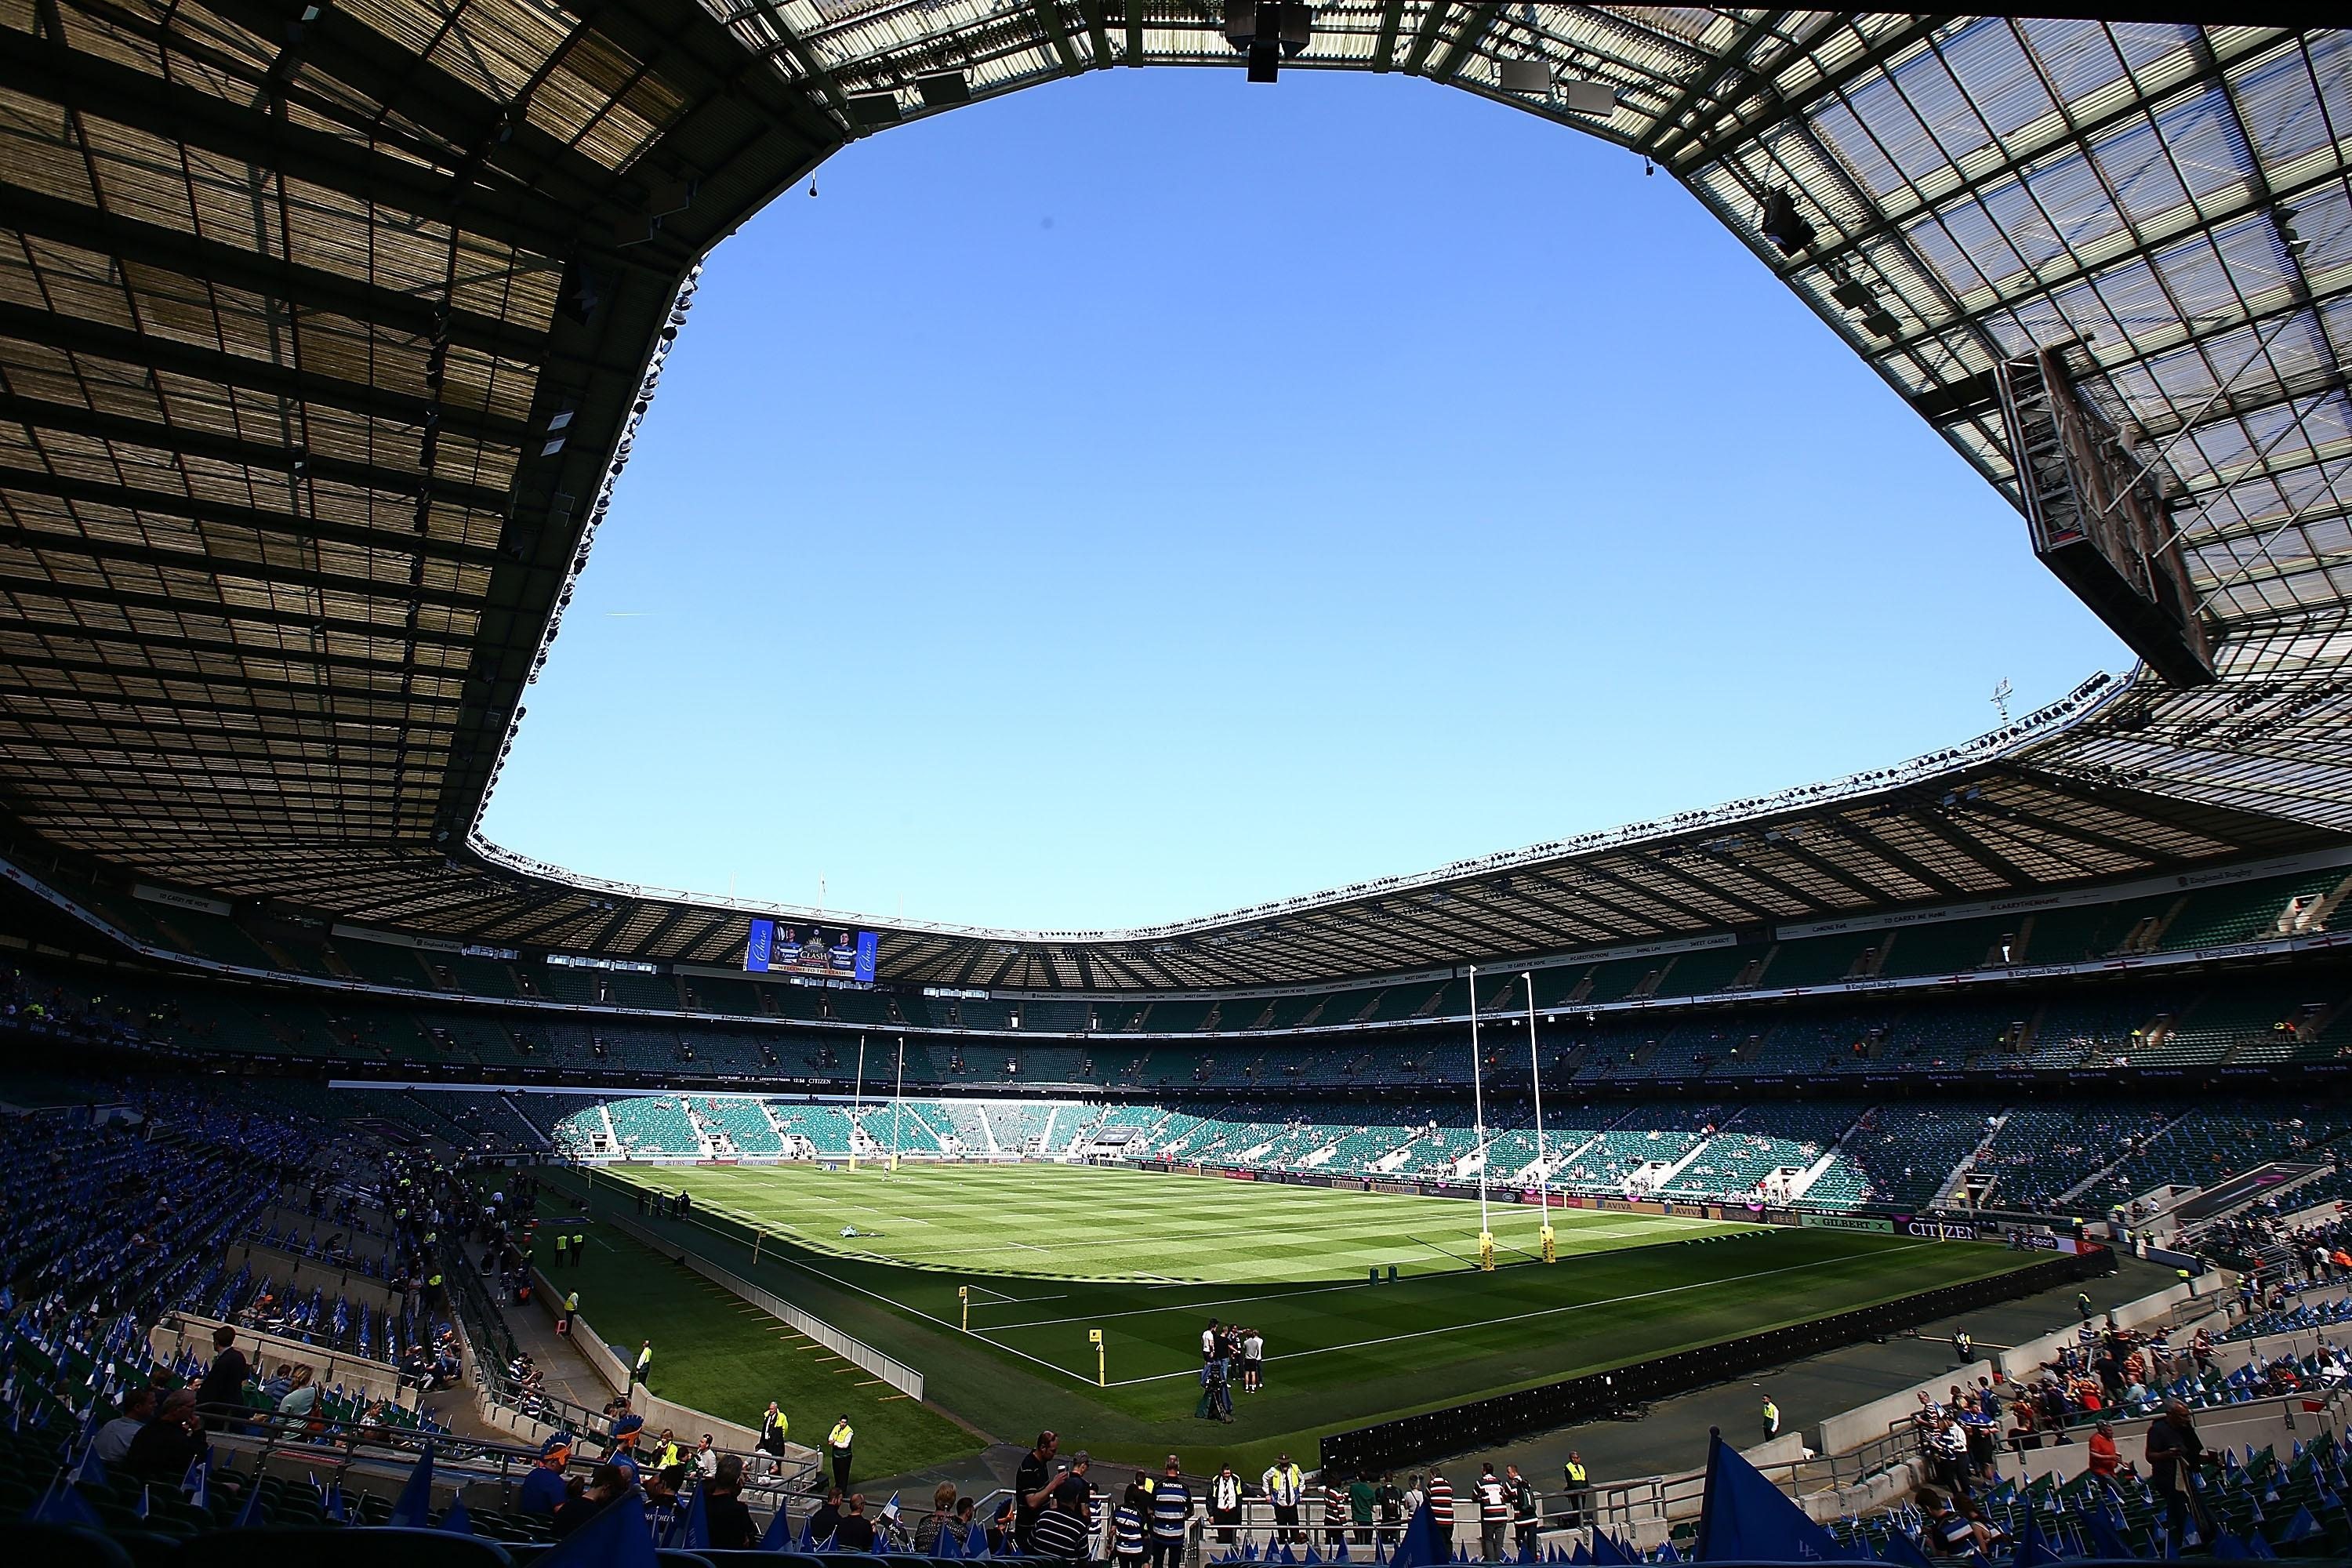 Leaked documents claim clubs are planning to form own league unless RFU does away with relegation